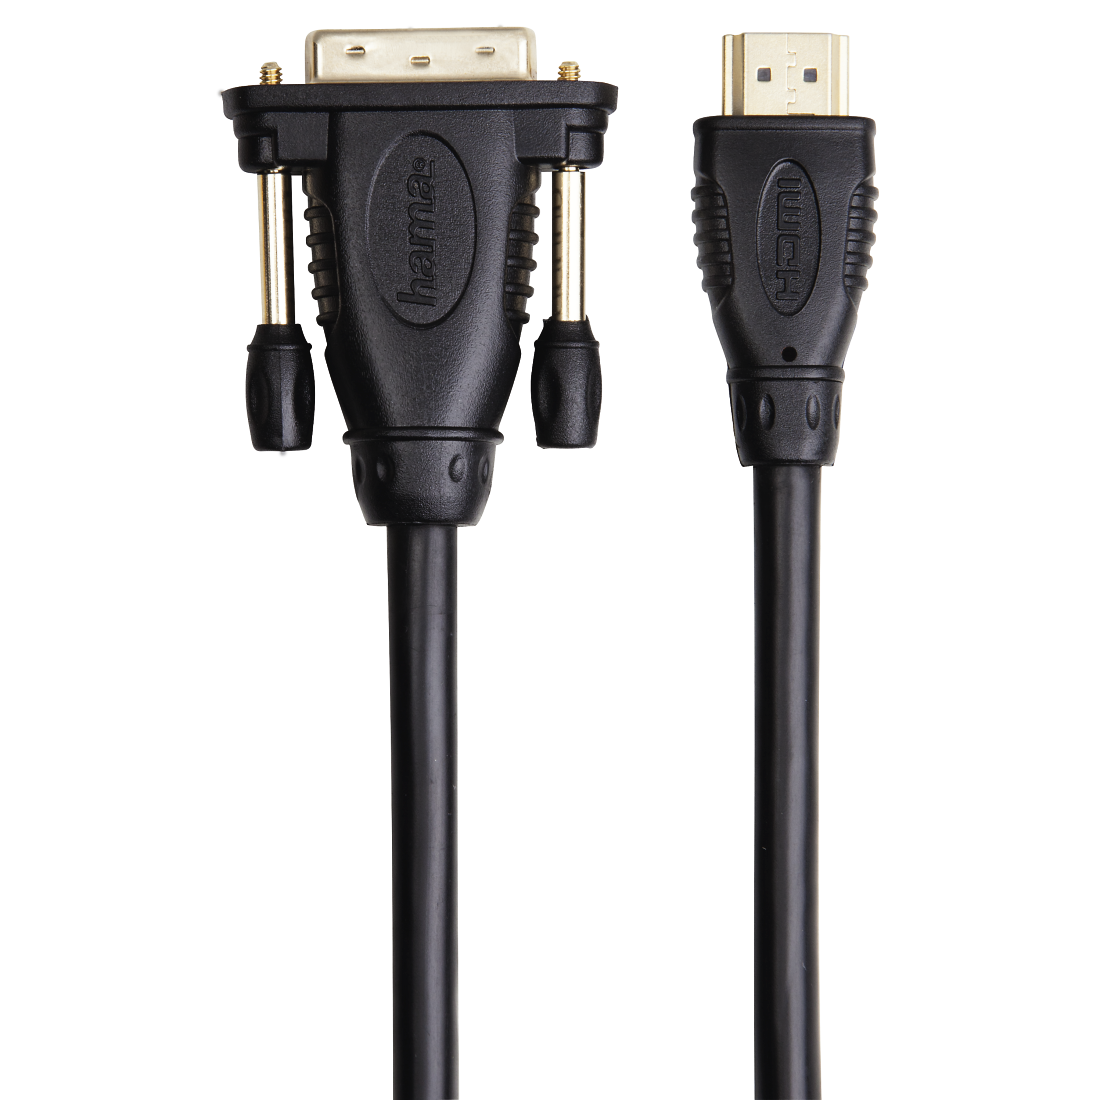 abx2 High-Res Image 2 - Hama, Adapter Cable, DVI plug - HDMI™ plug, gold-plated, double shielded, 2 m